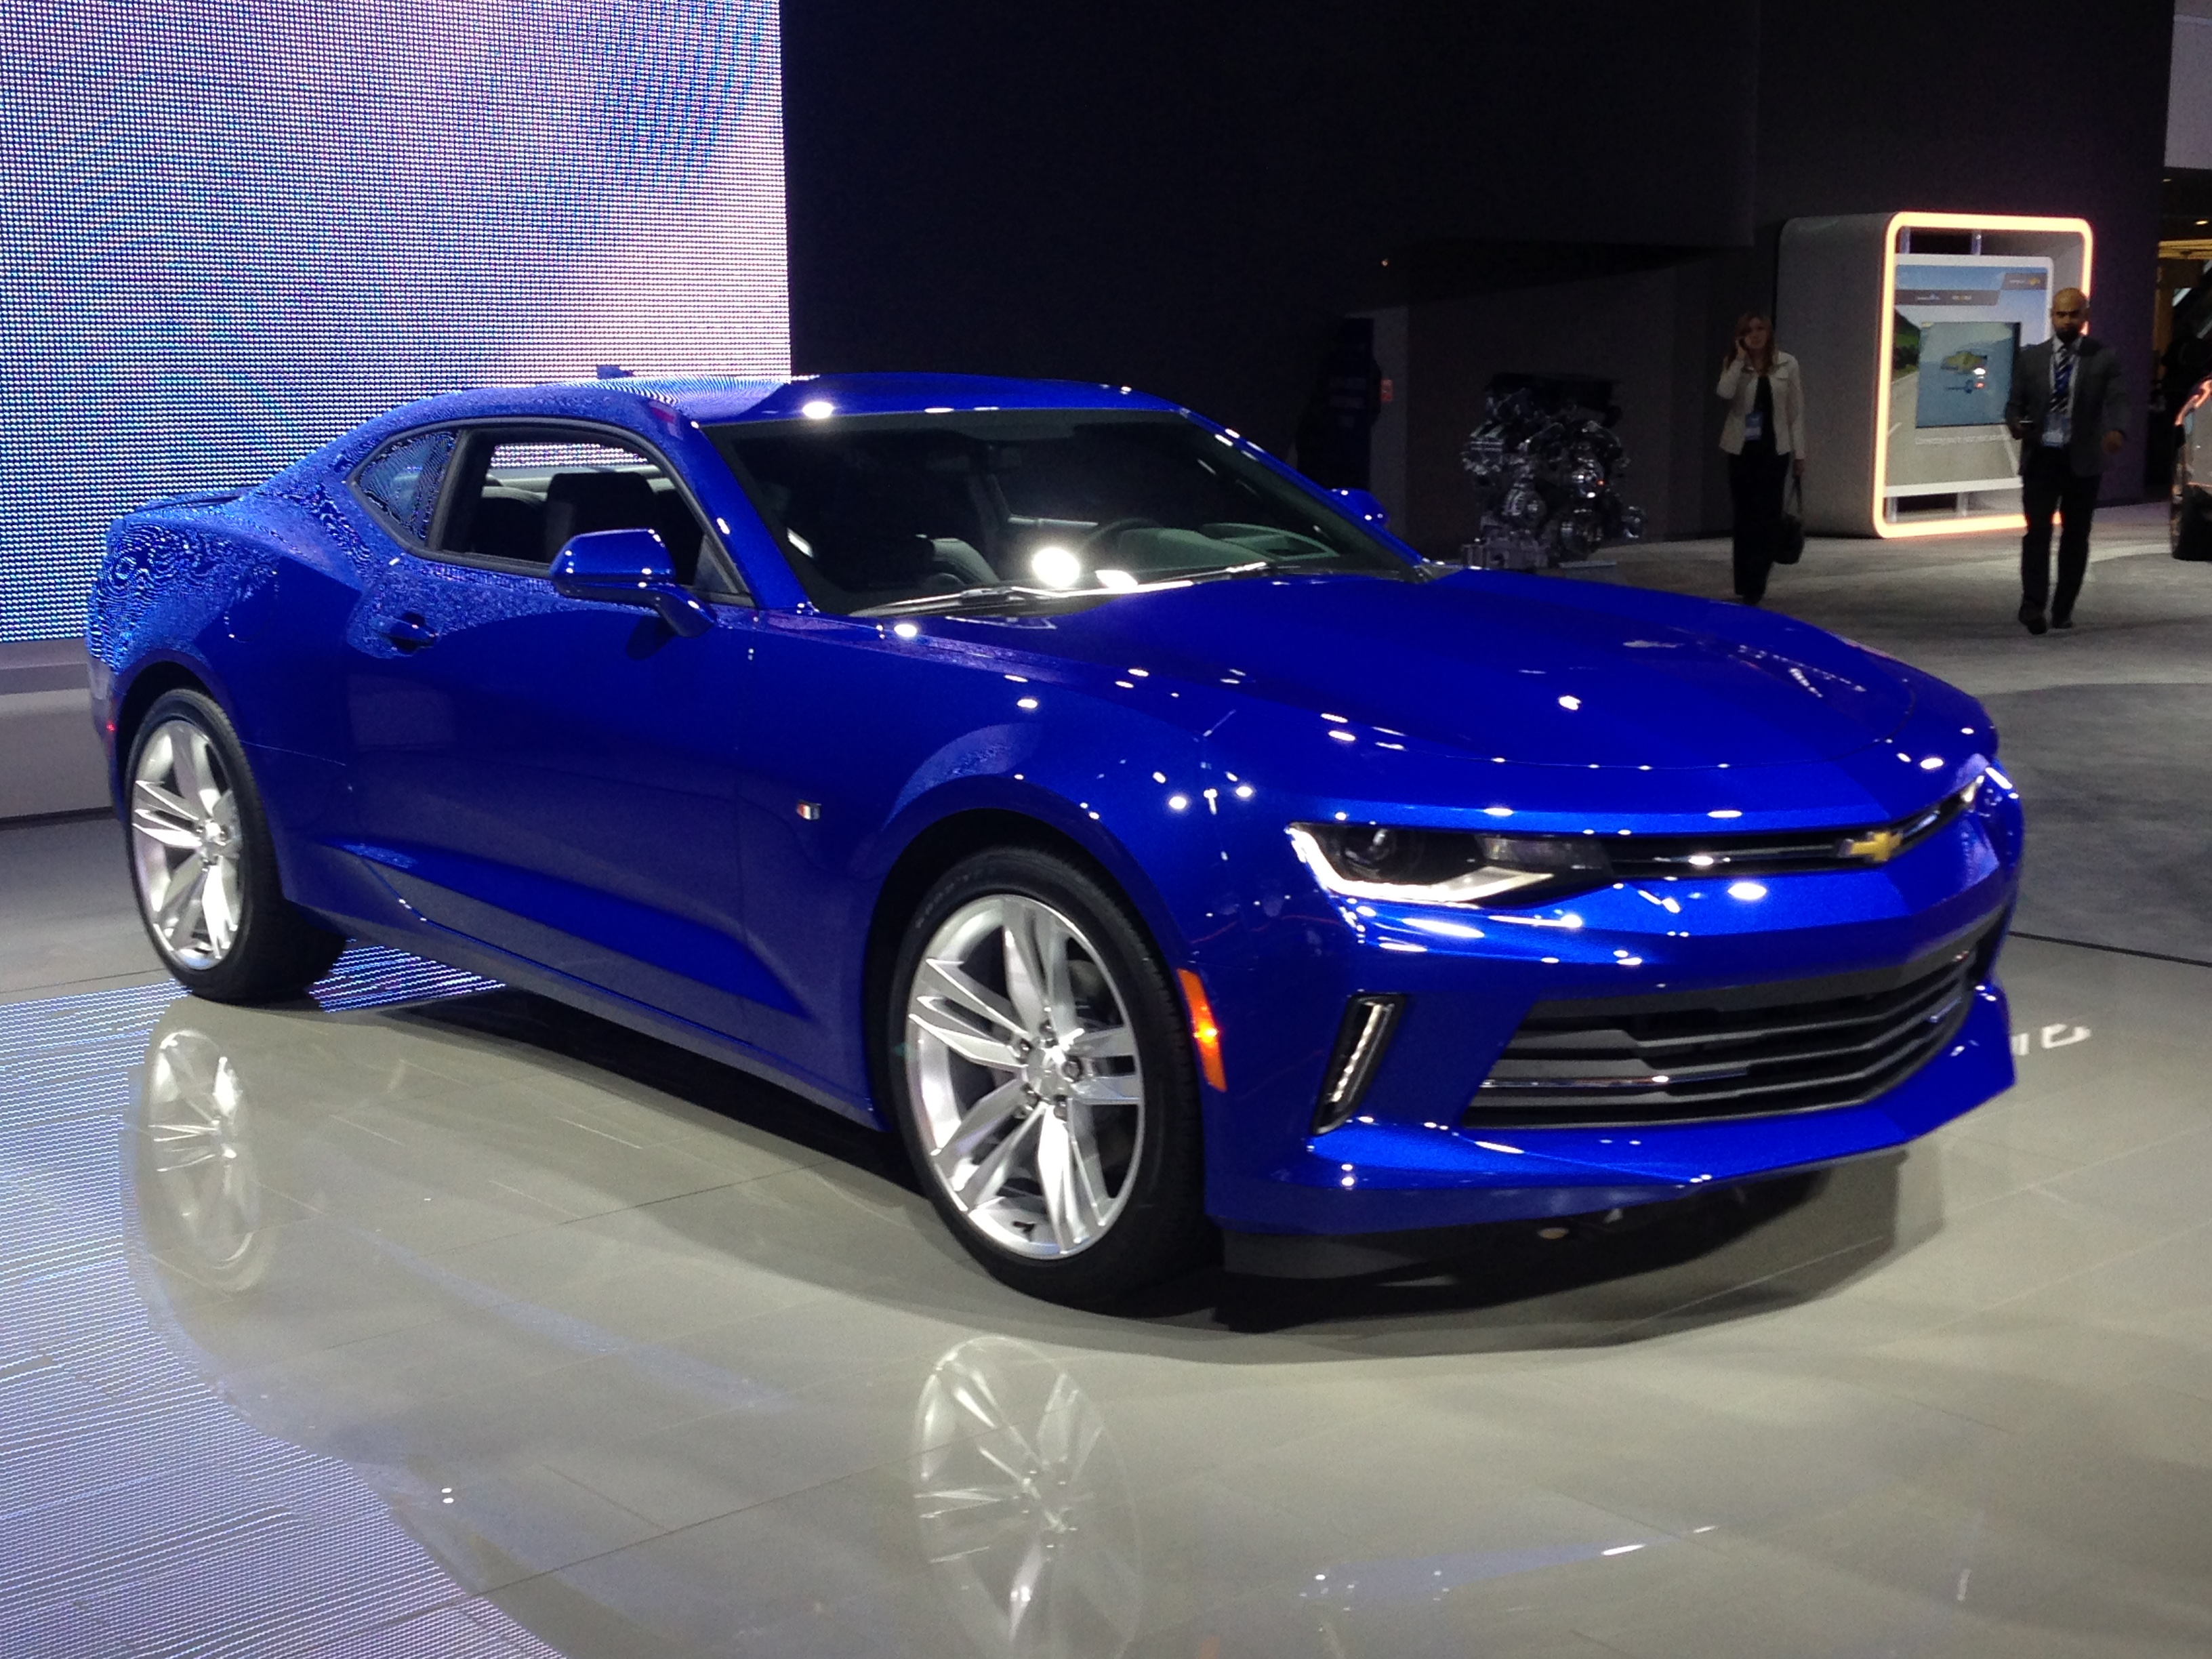 2016 Camaro. Motortrend's Car of the Year